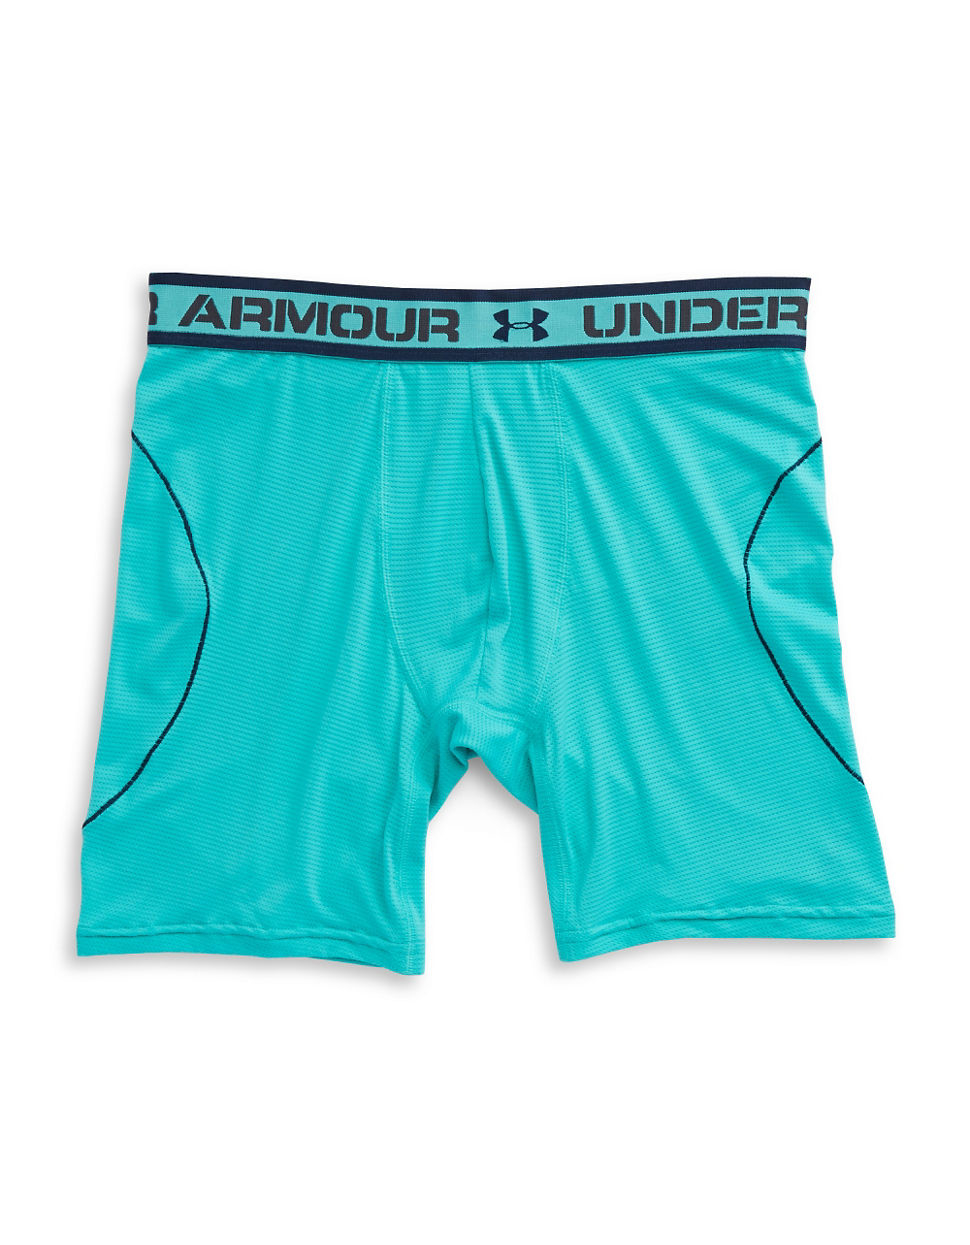 Under armour iso chill 6 inch boxerjock in teal for men lyst for Teal under armour shirt